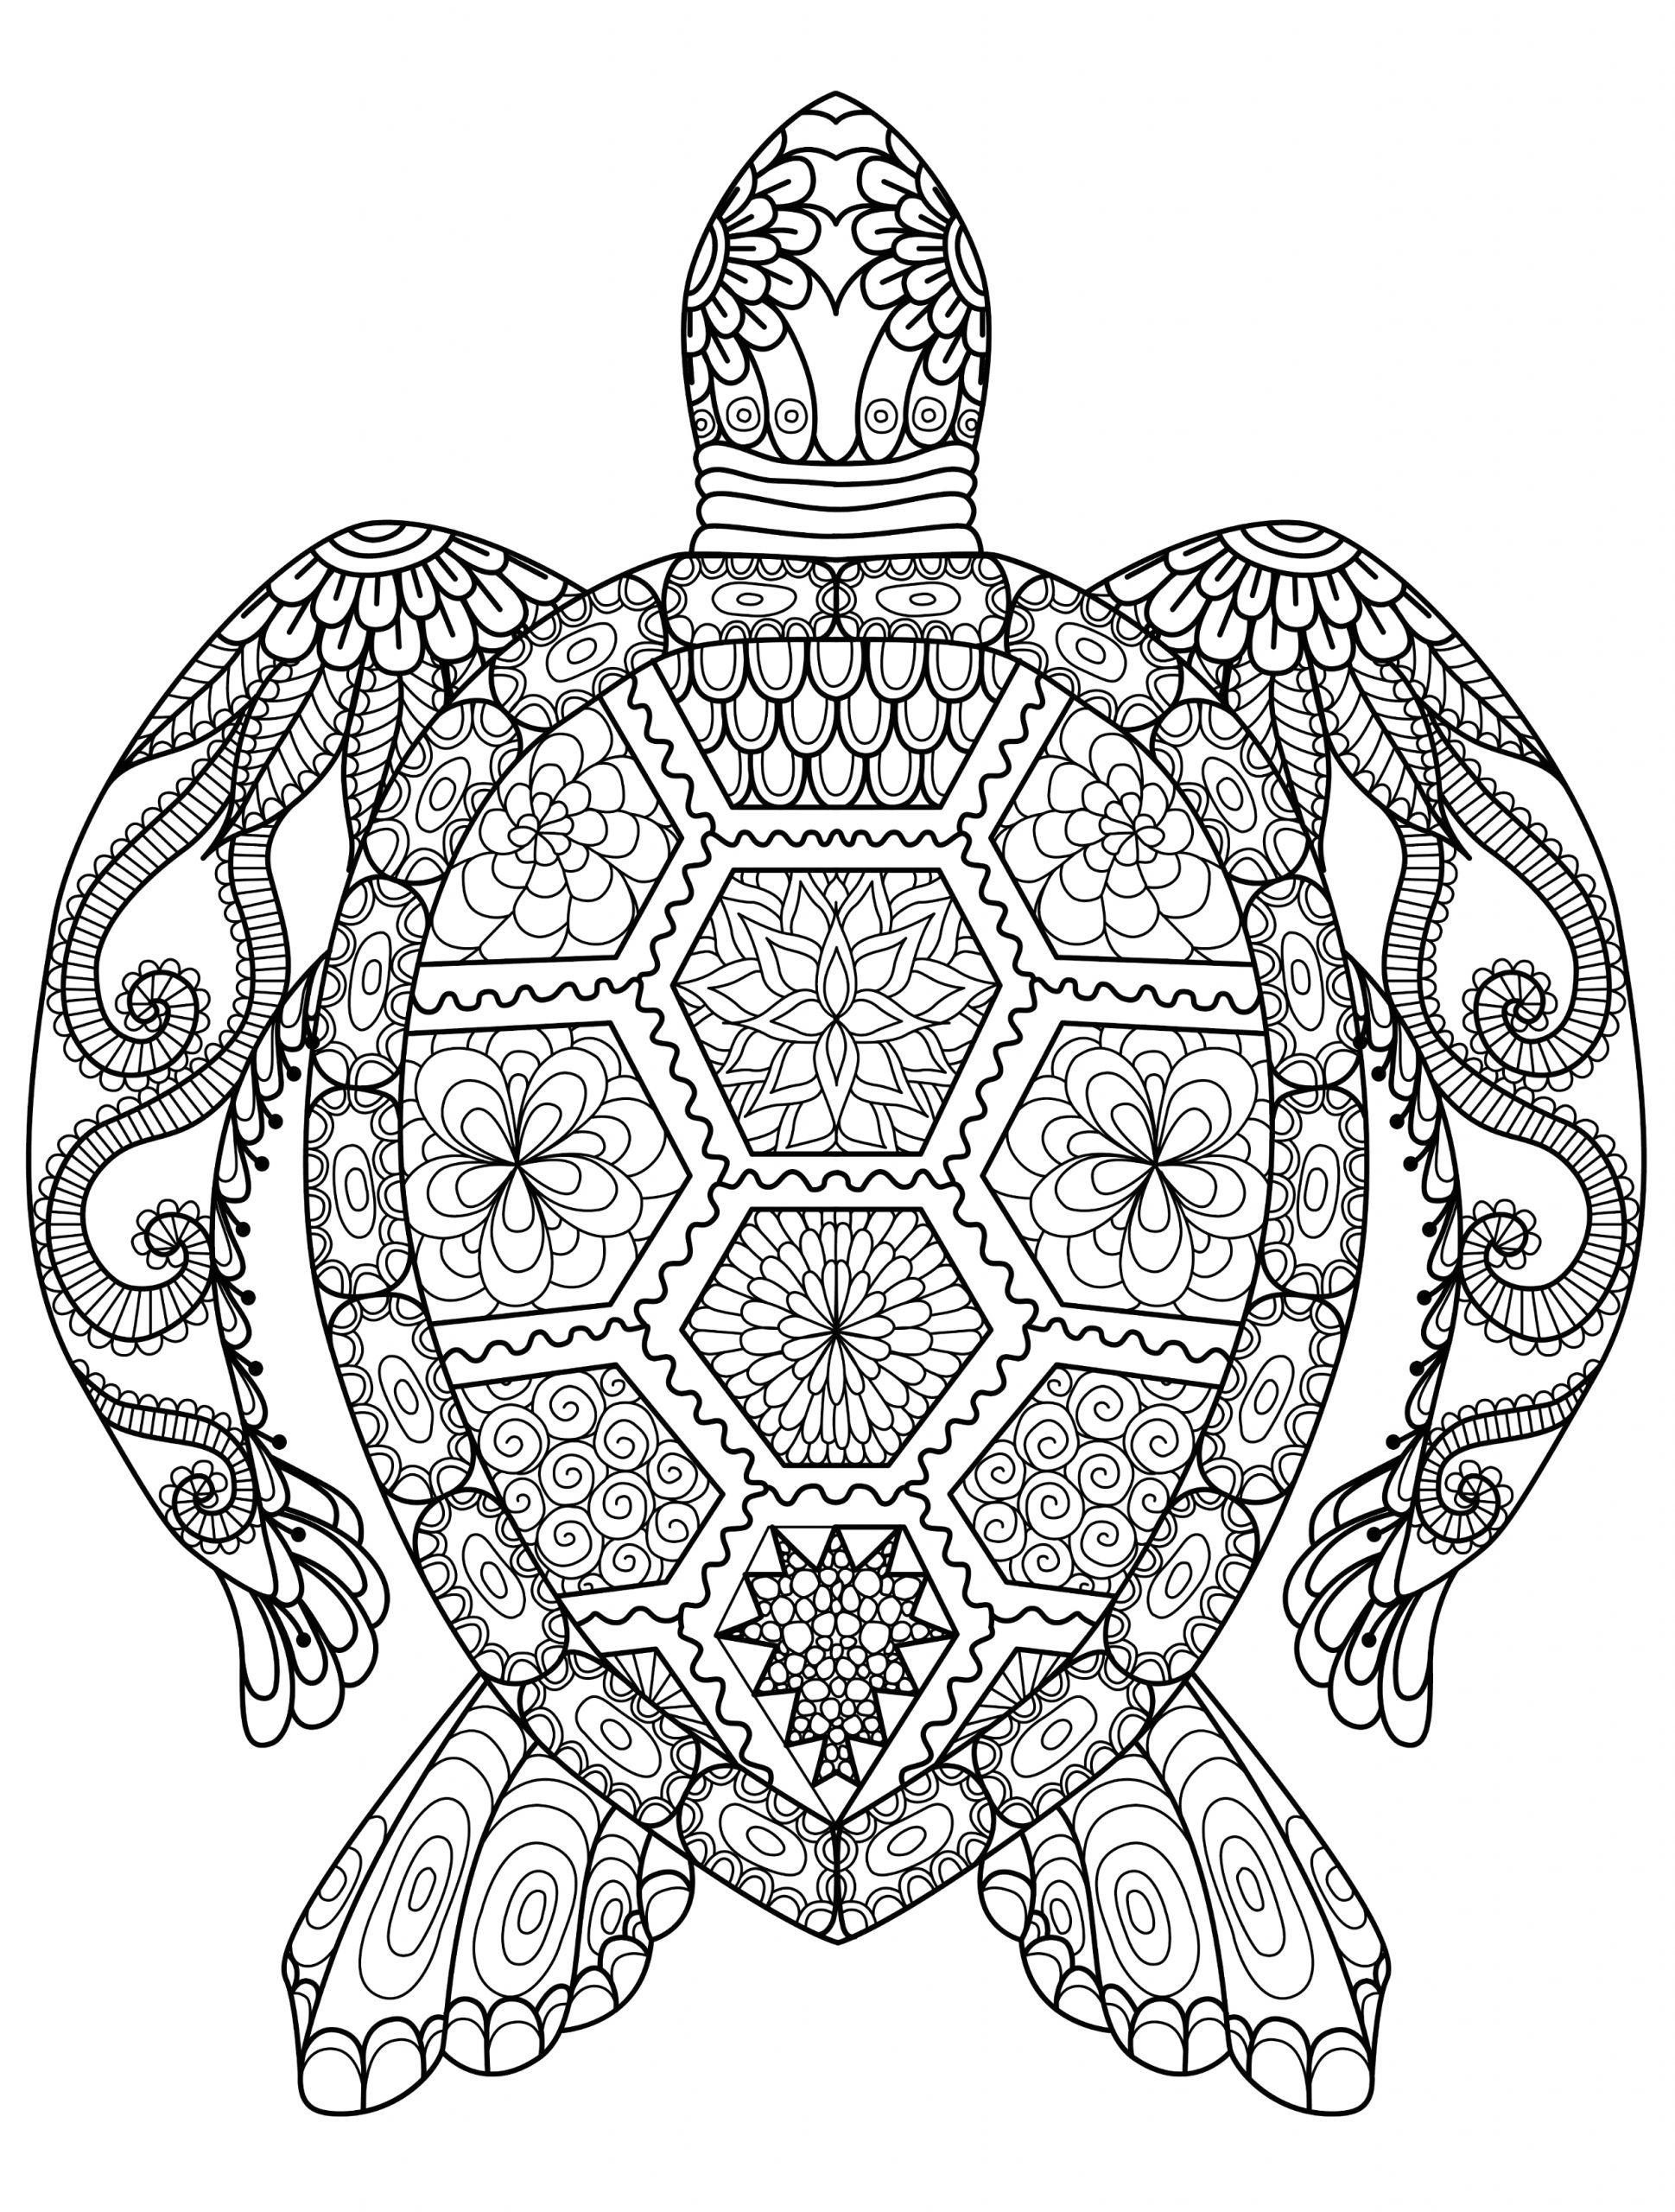 Animal Coloring Pages for Adults to Print Adult Coloring Pages Animals Best Coloring Pages for Kids